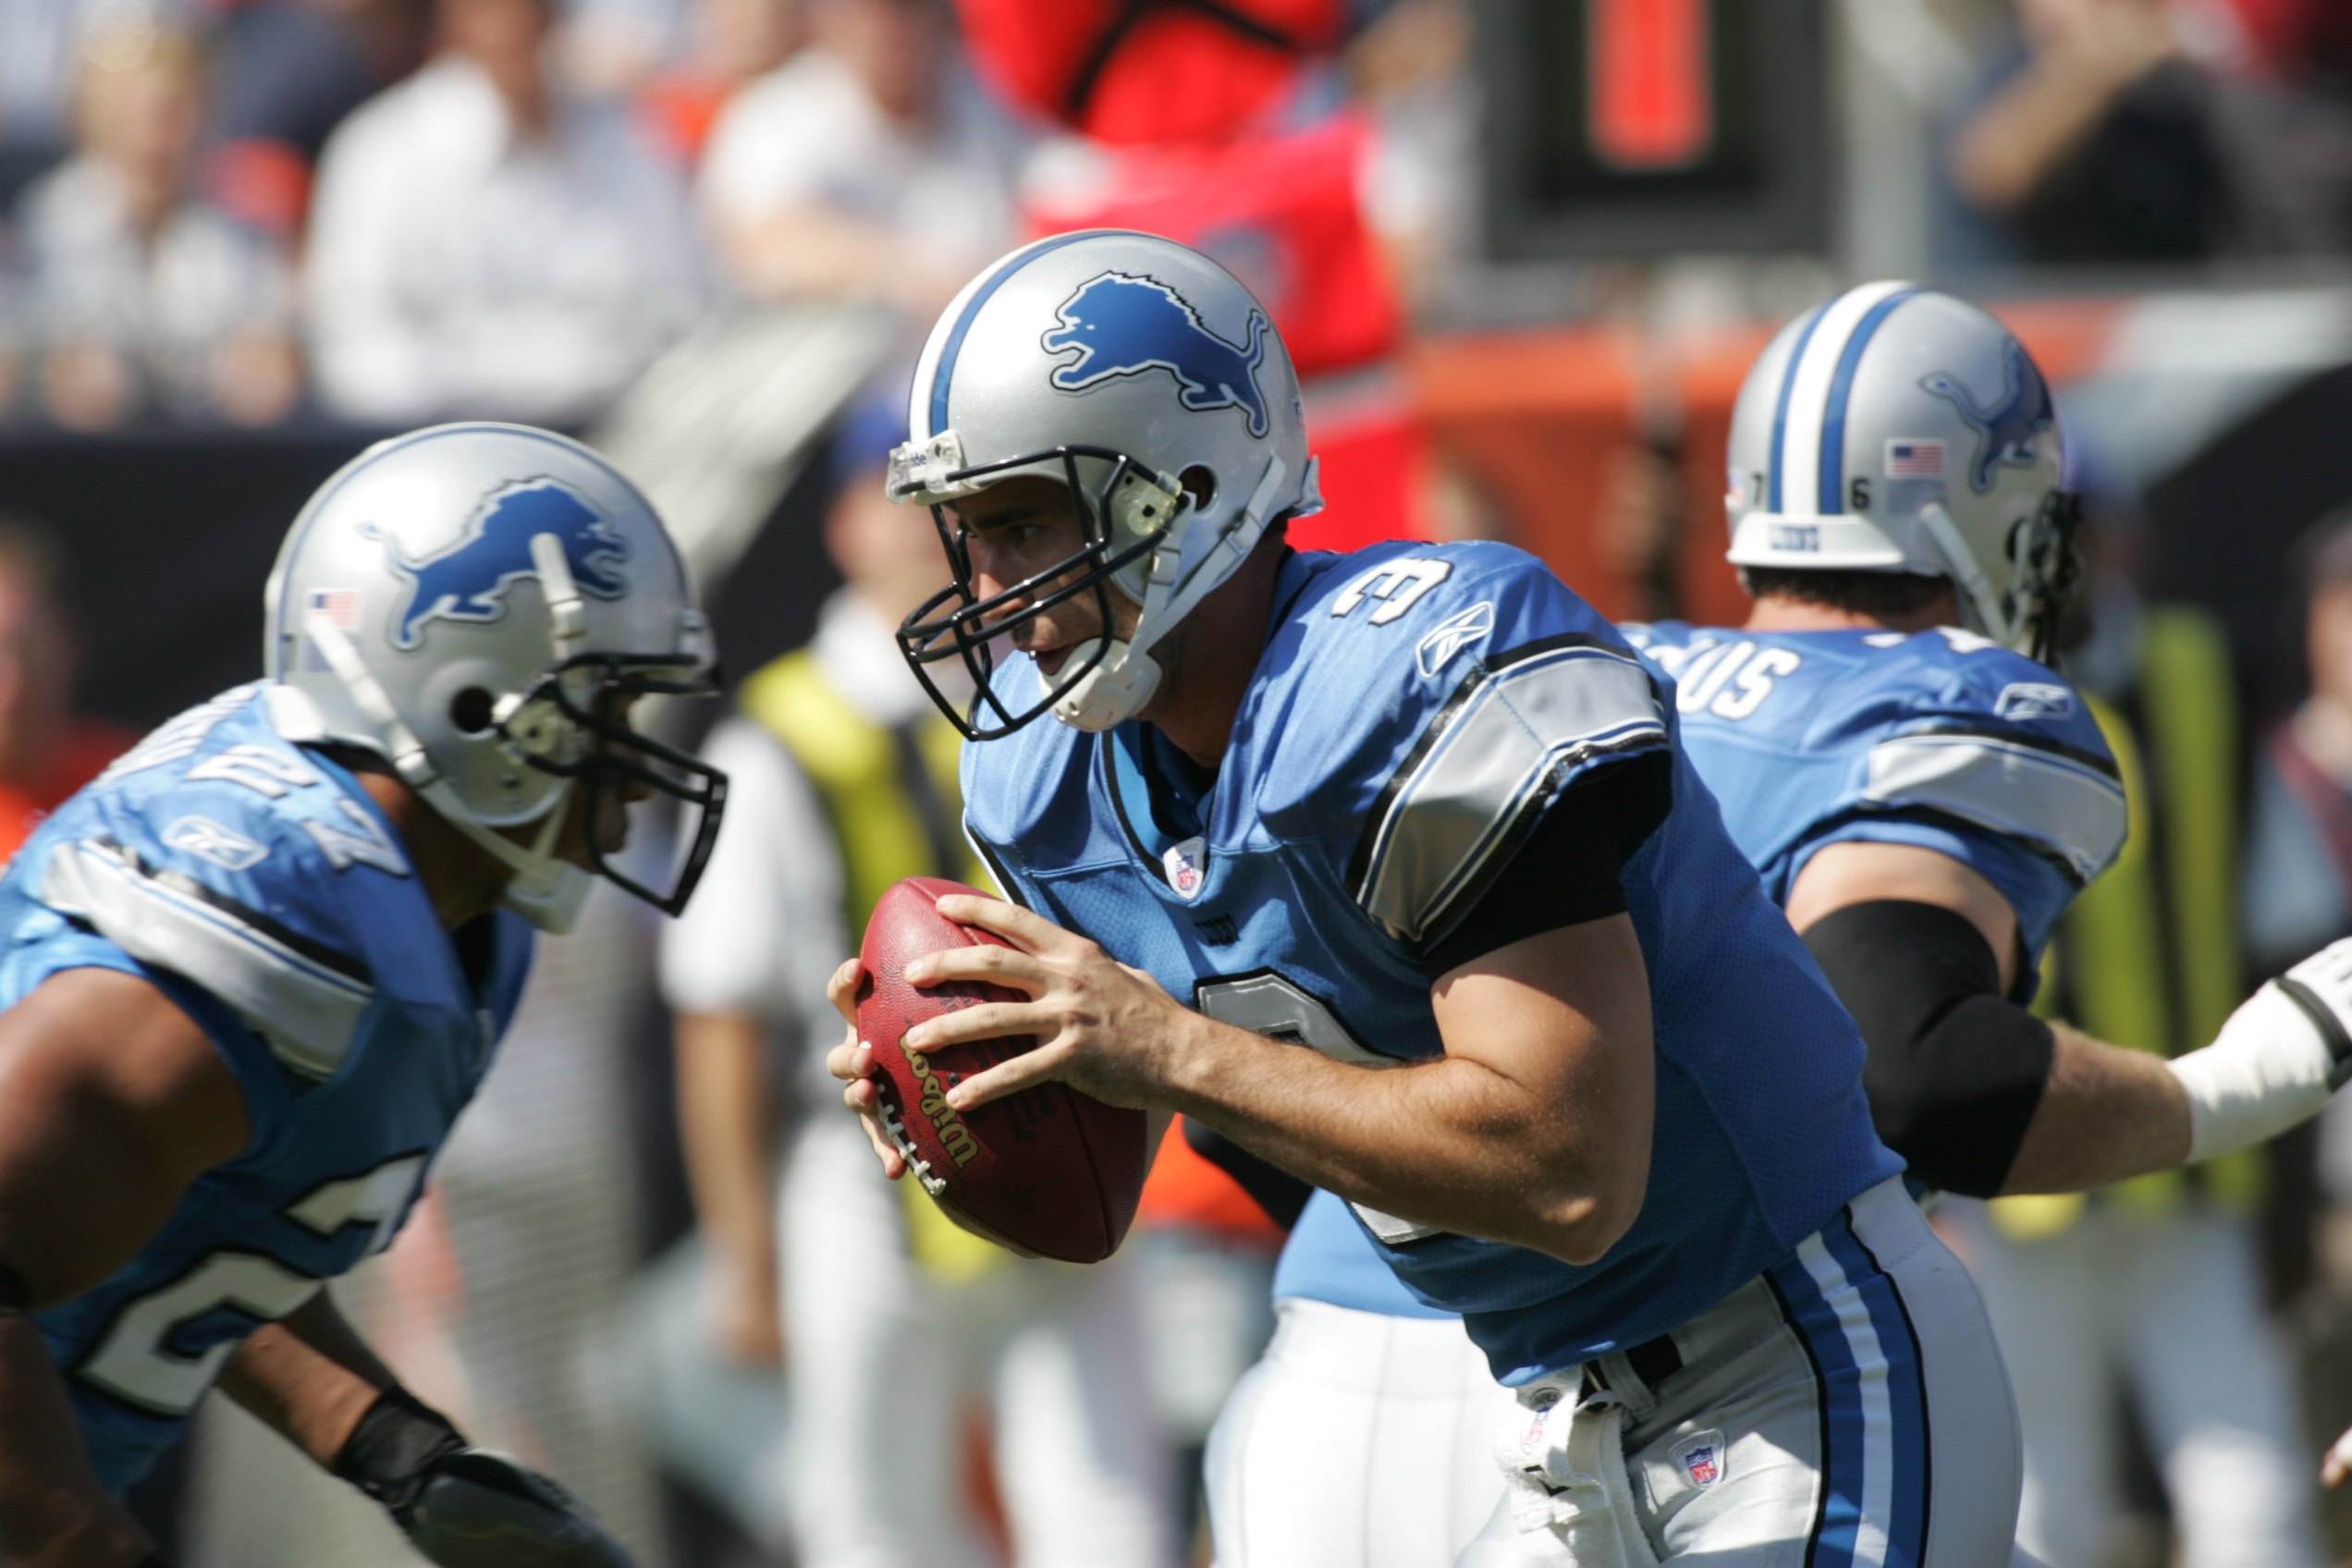 Joey Harrington Was Depressed With the Detroit Lions and Billy Joel Later Cheered Him Up